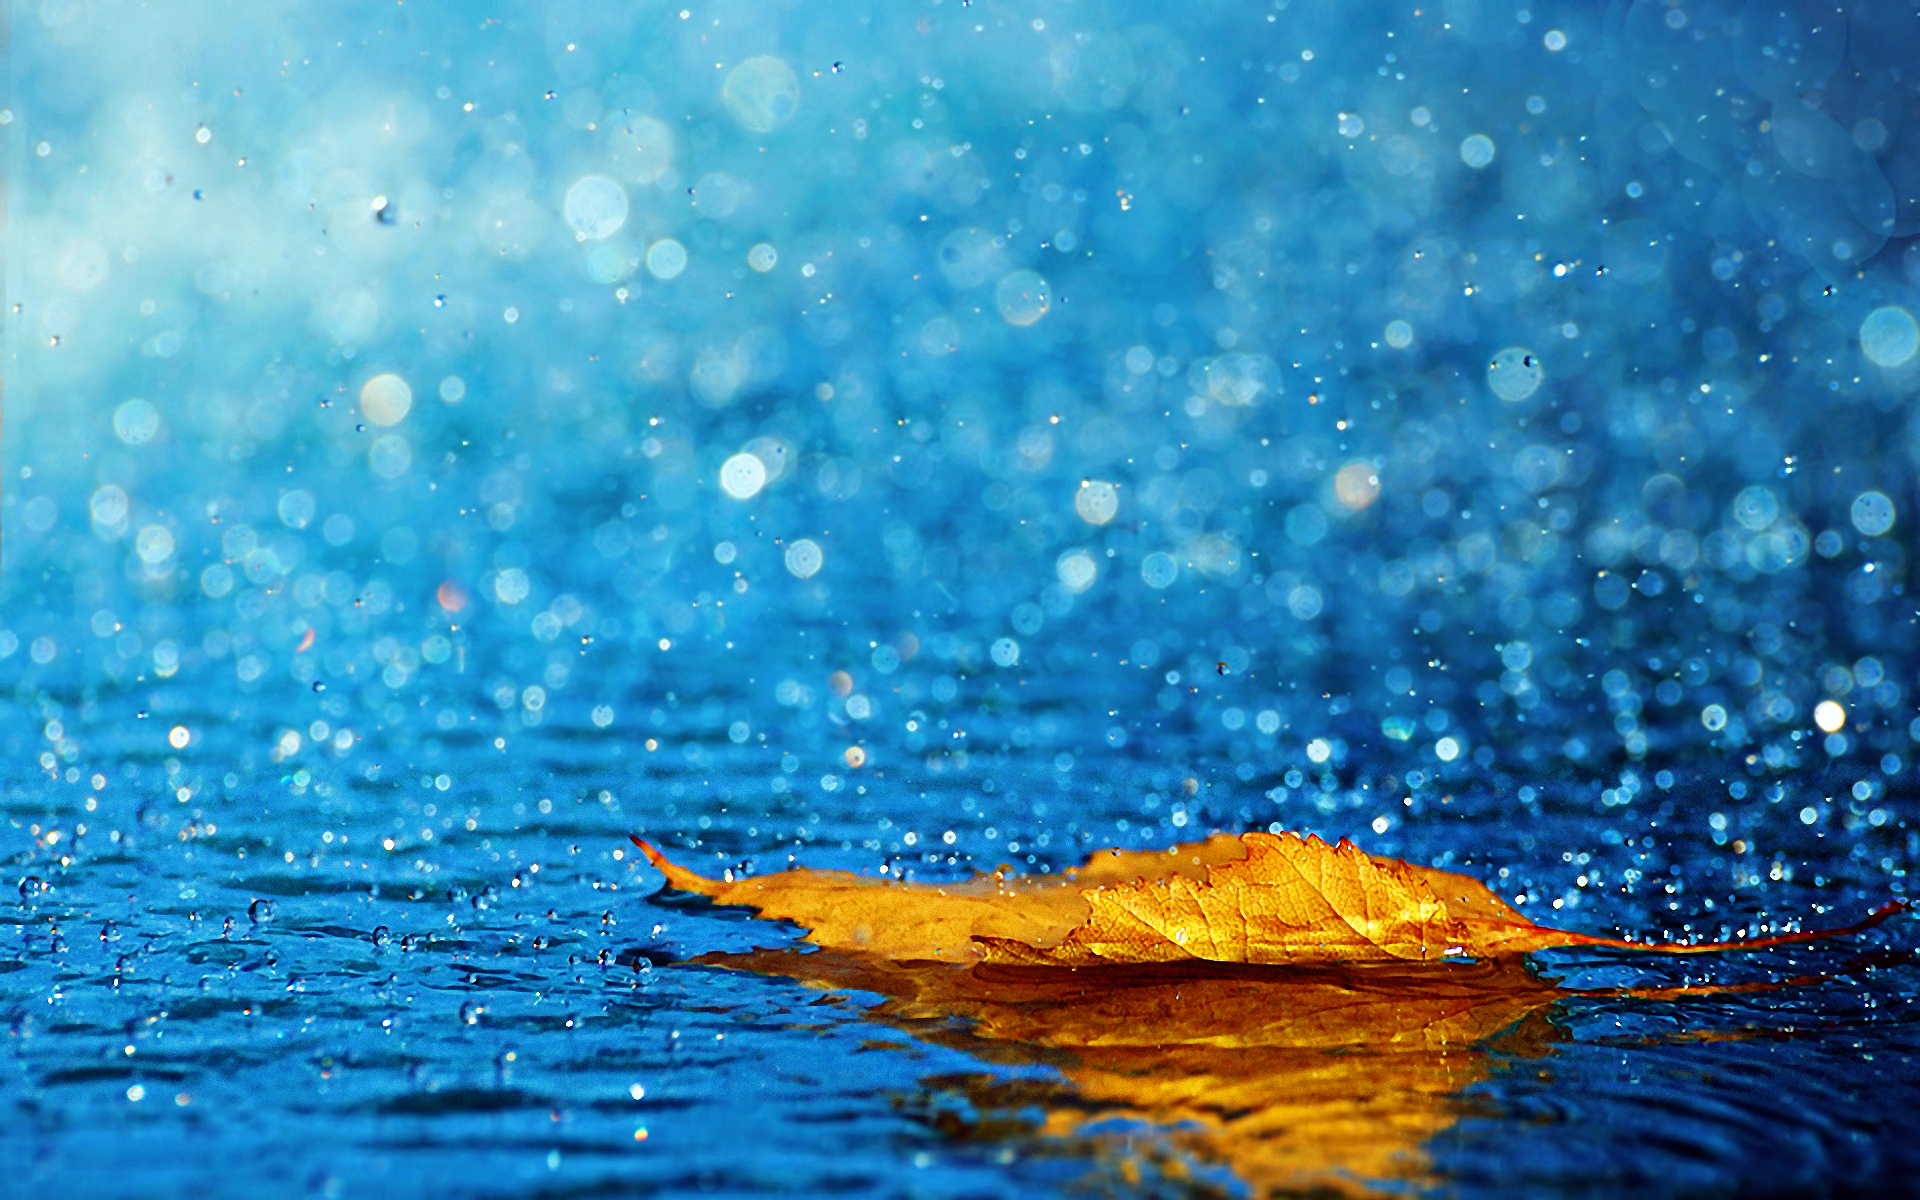 Rain HD Wallpapers For Desktop One HD Wallpaper Pictures Backgrounds 1920x1200